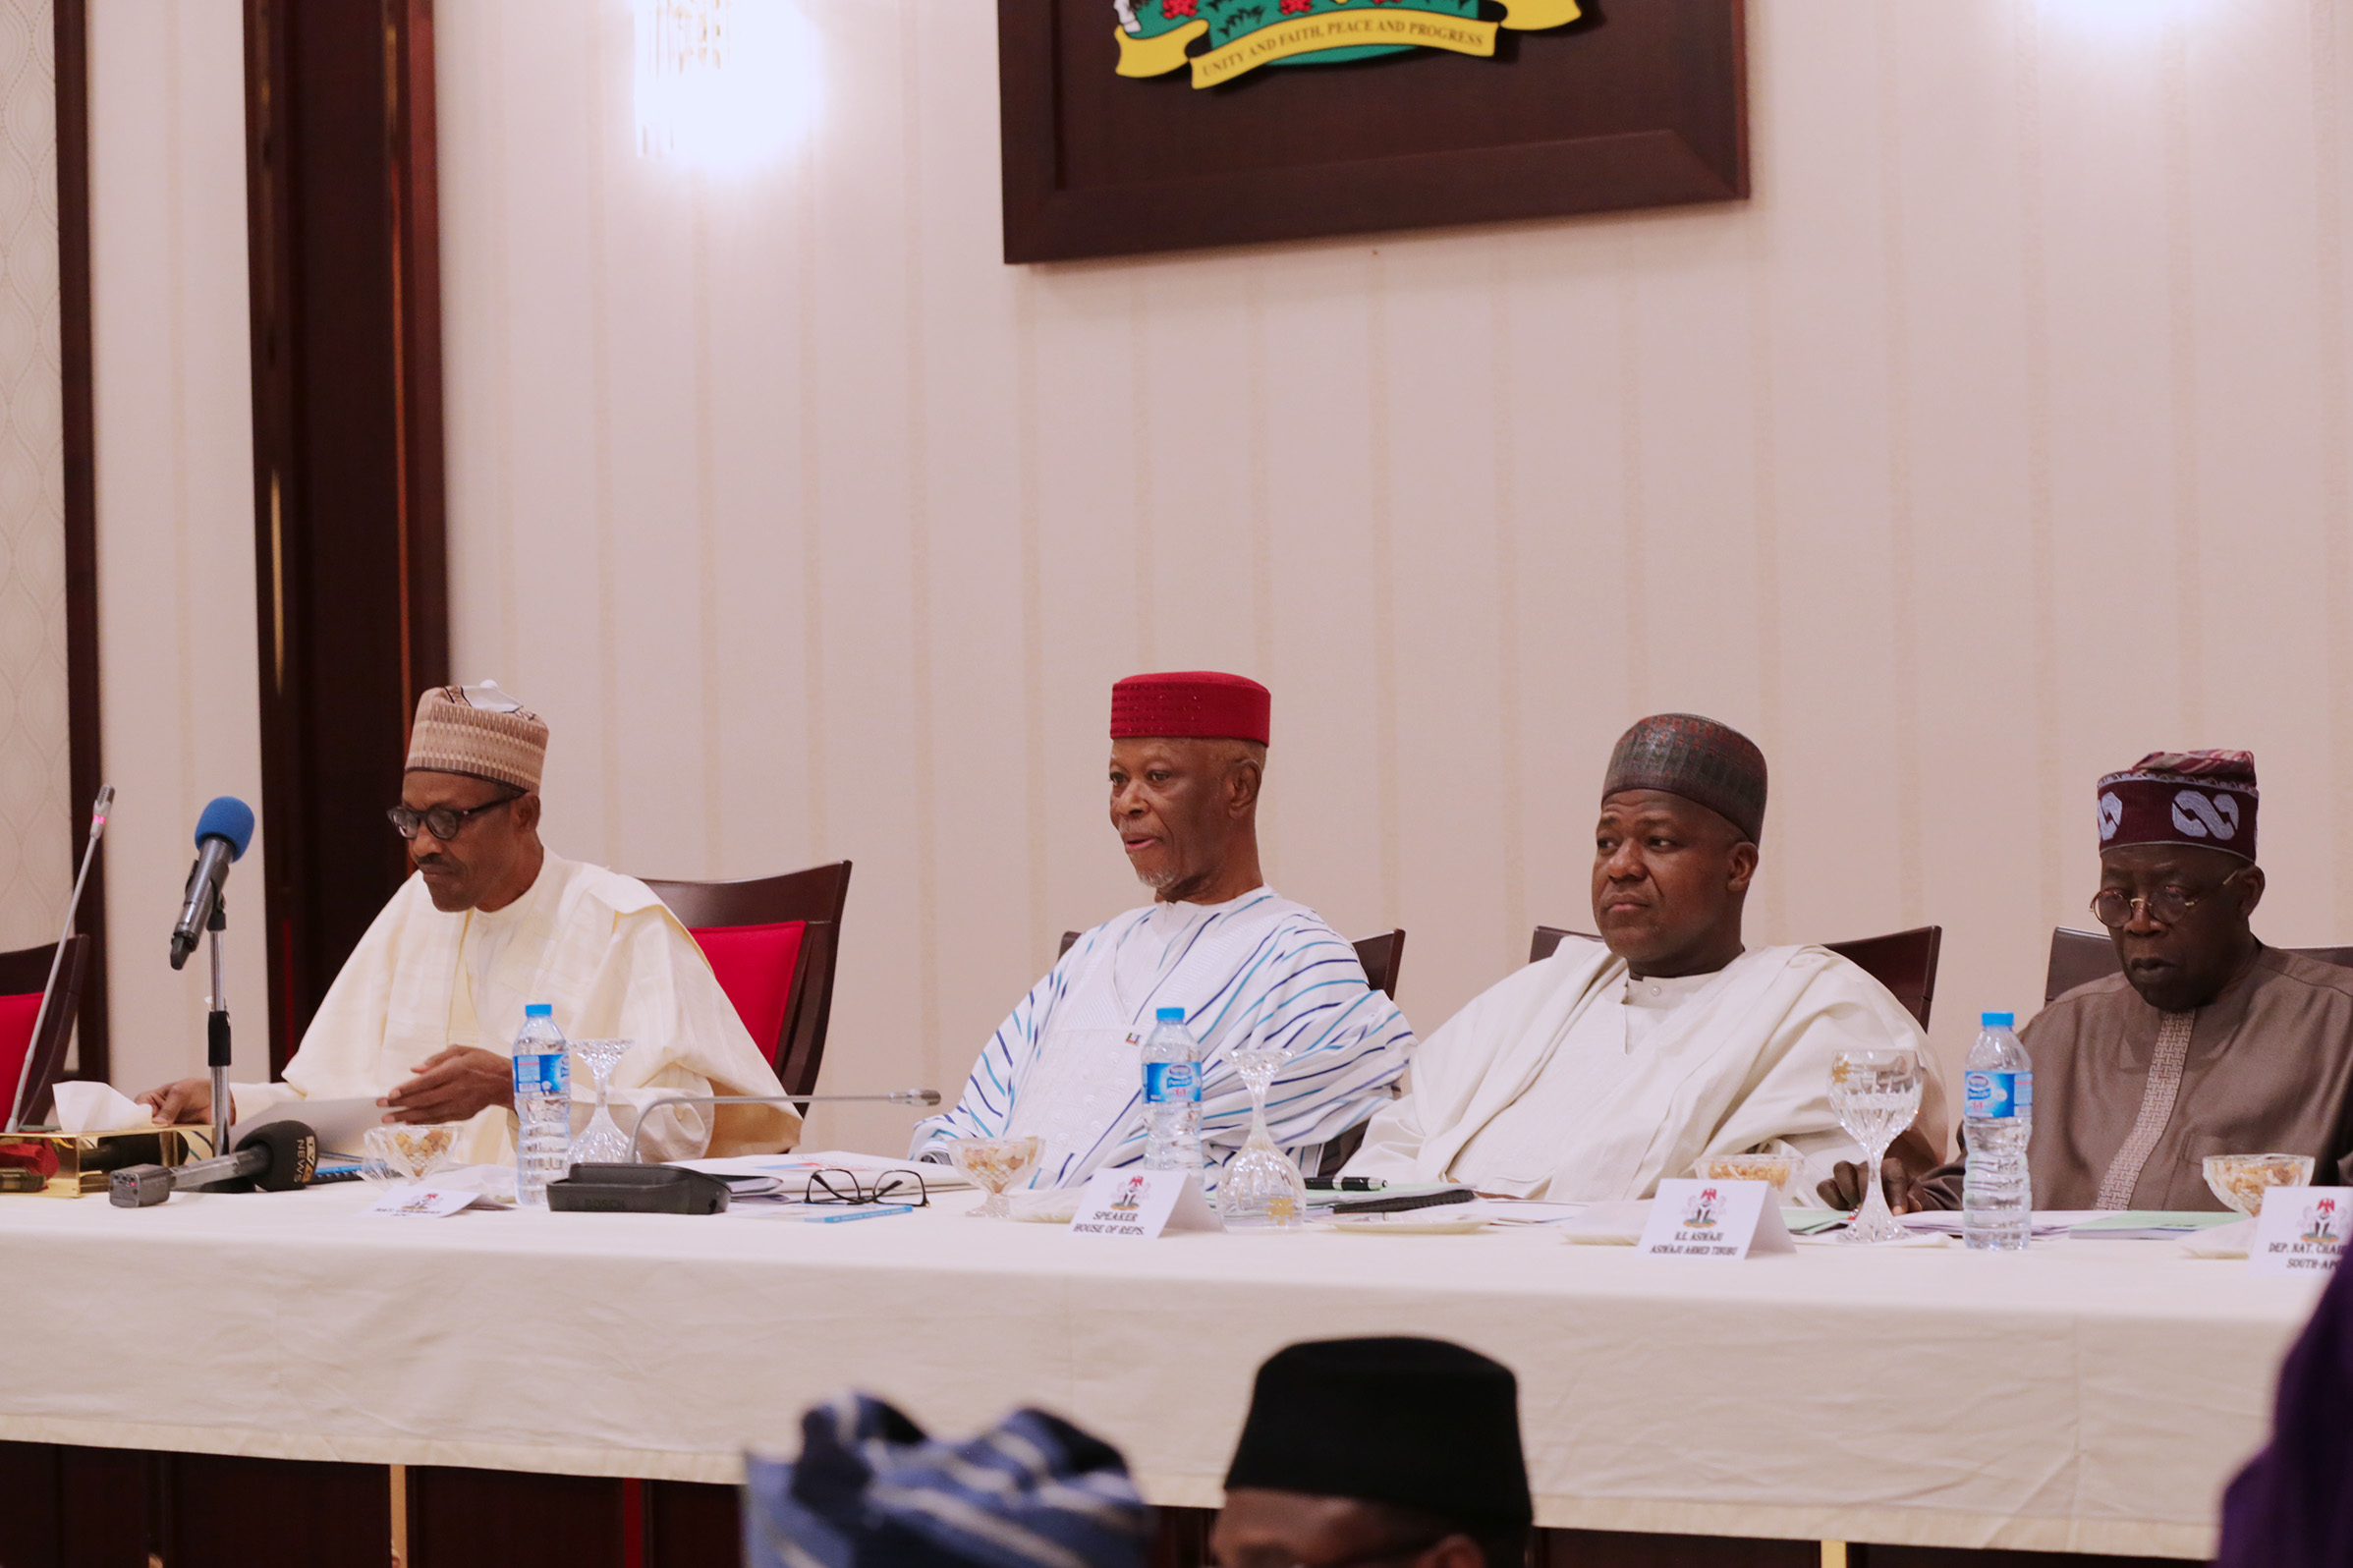 APC national executive committee meets over restructuring, others today